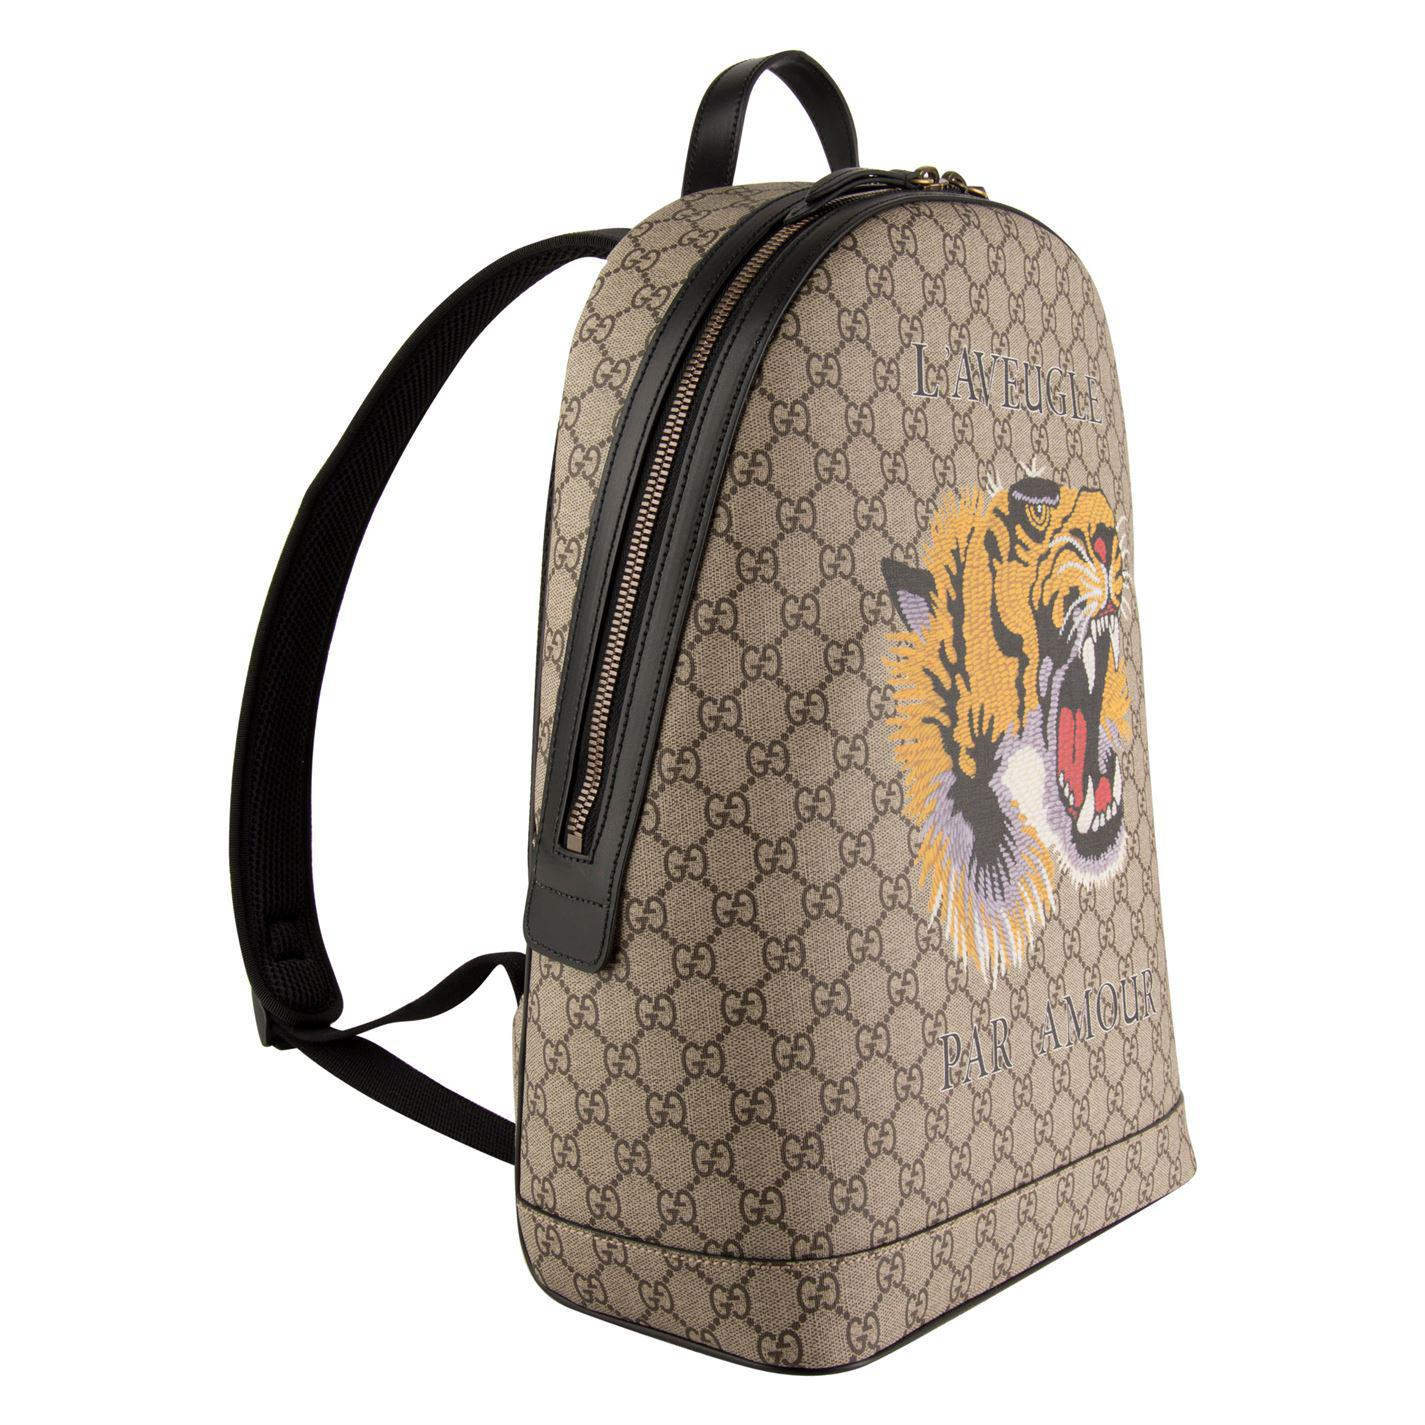 c2a081872ae0 Gucci - Natural Tiger Gg Supreme Backpack - Lyst. View fullscreen